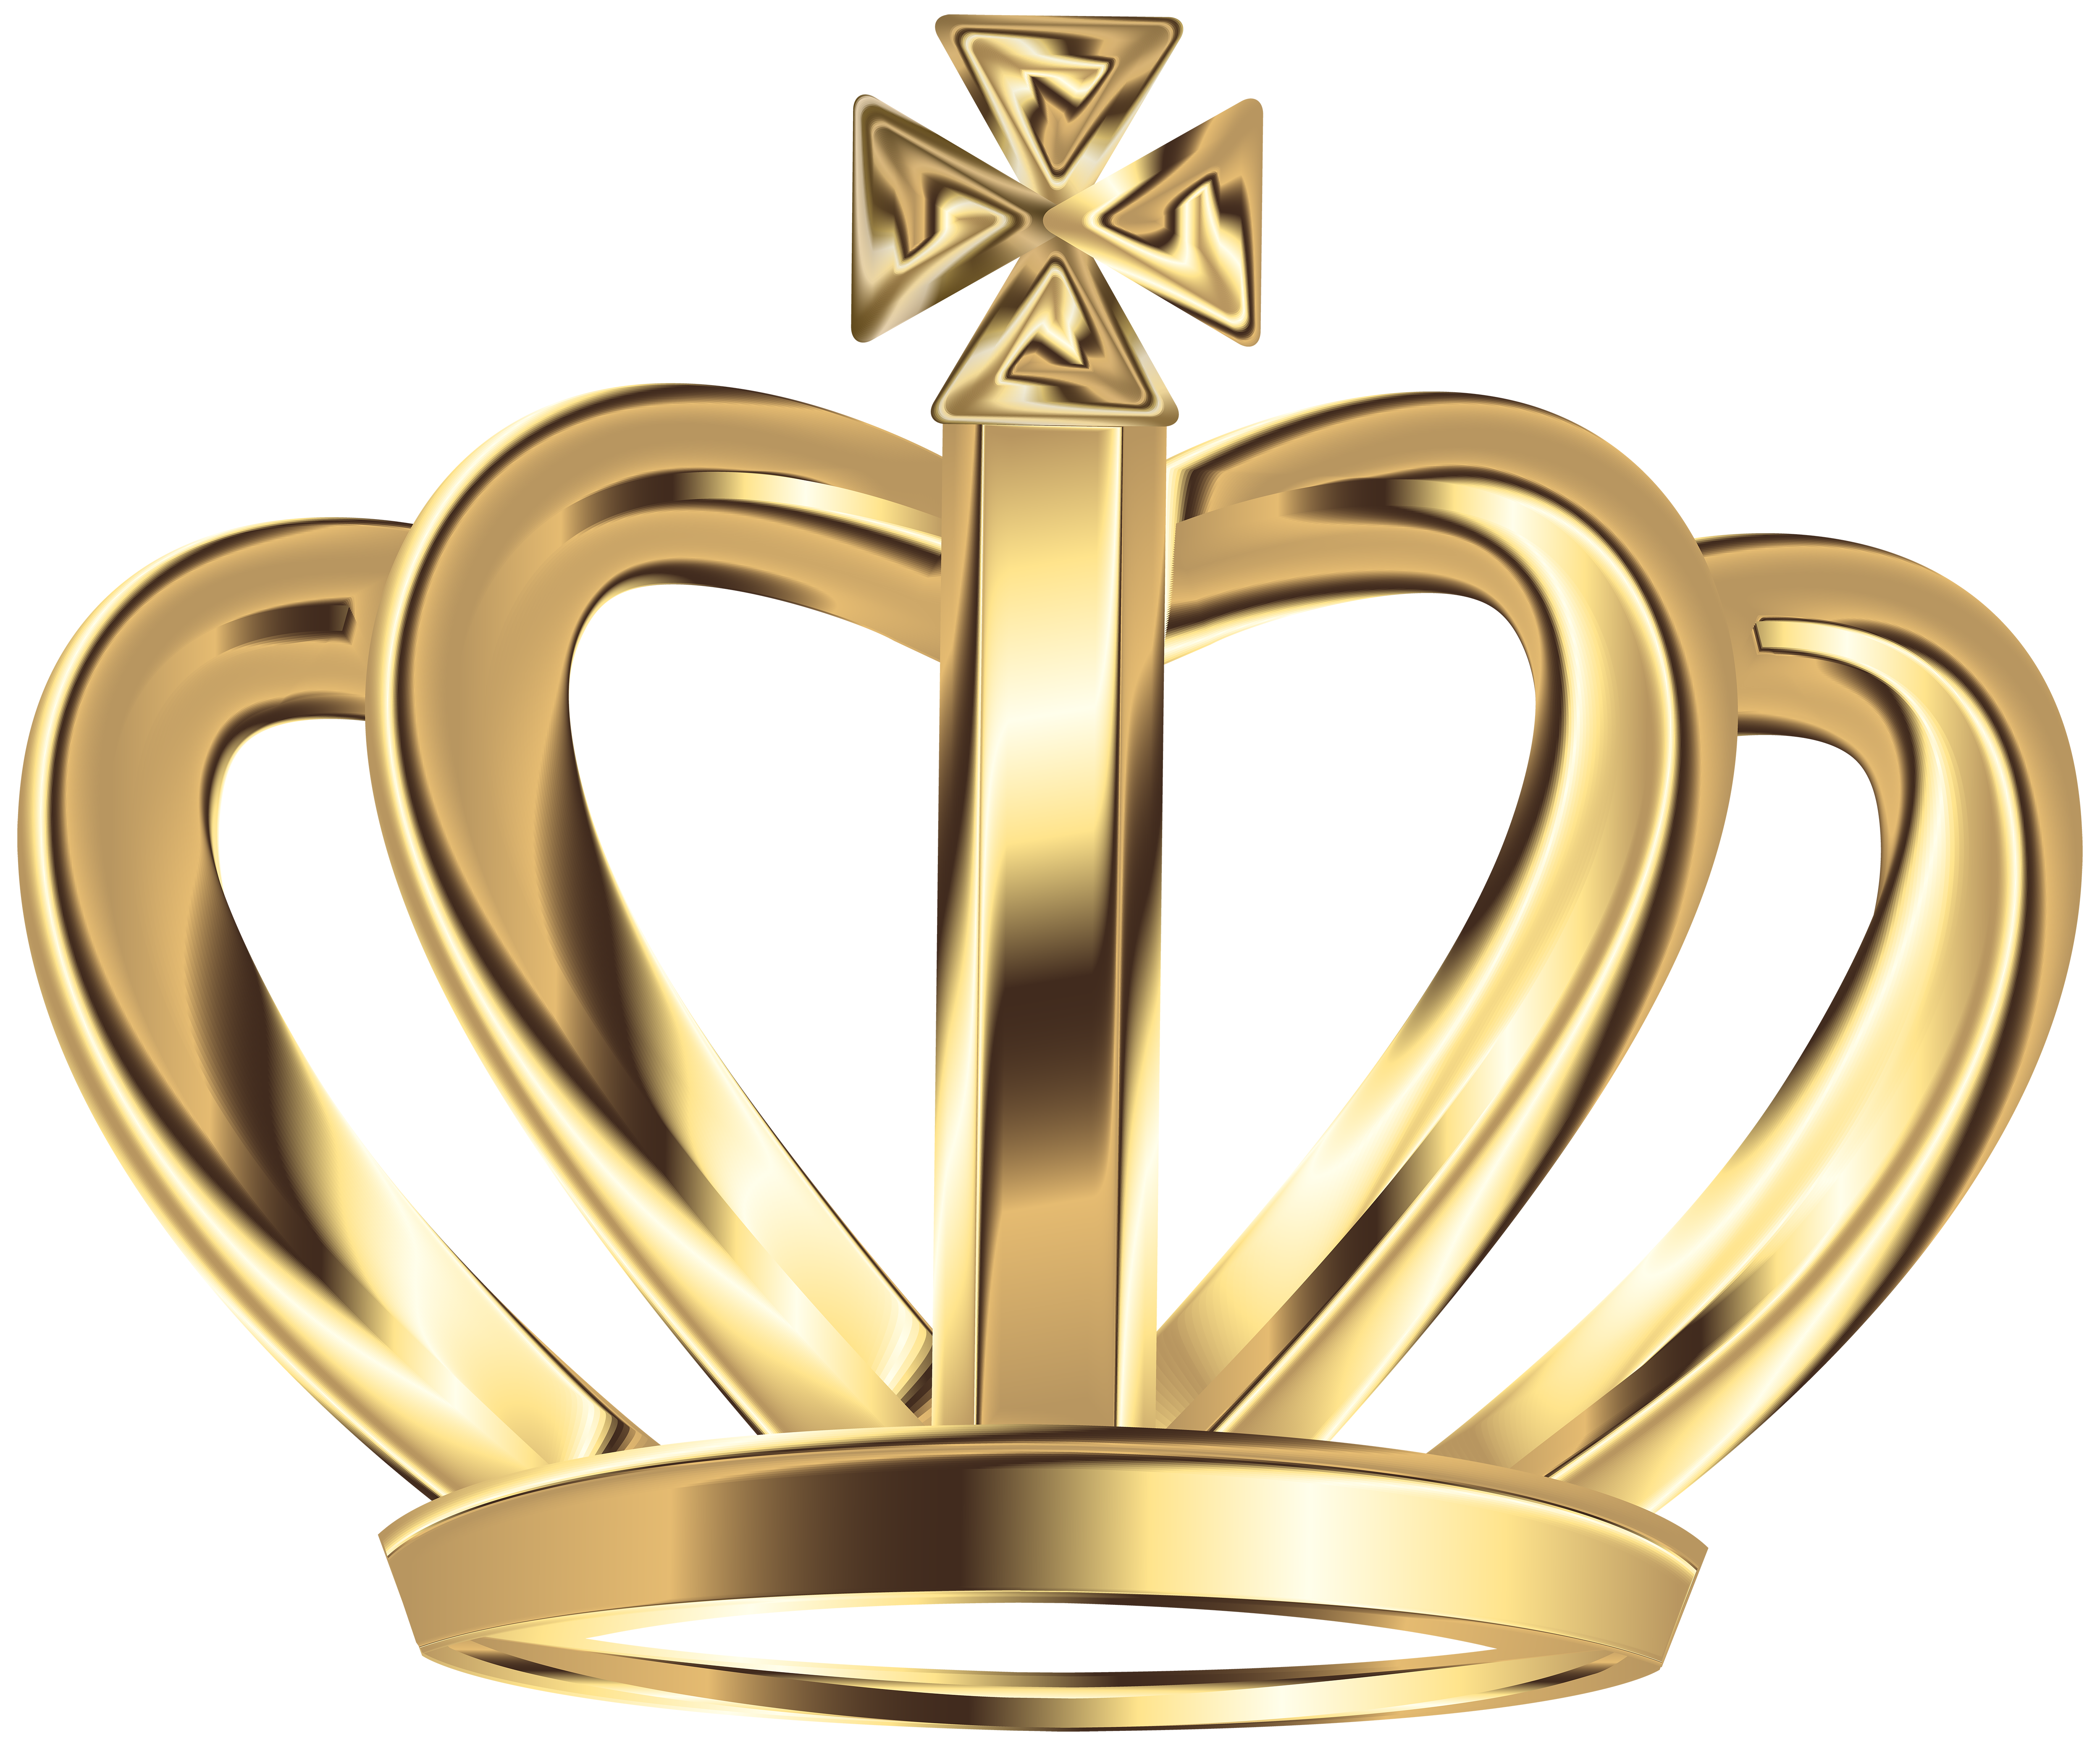 Outstanding clip art free. Queen clipart crown gold